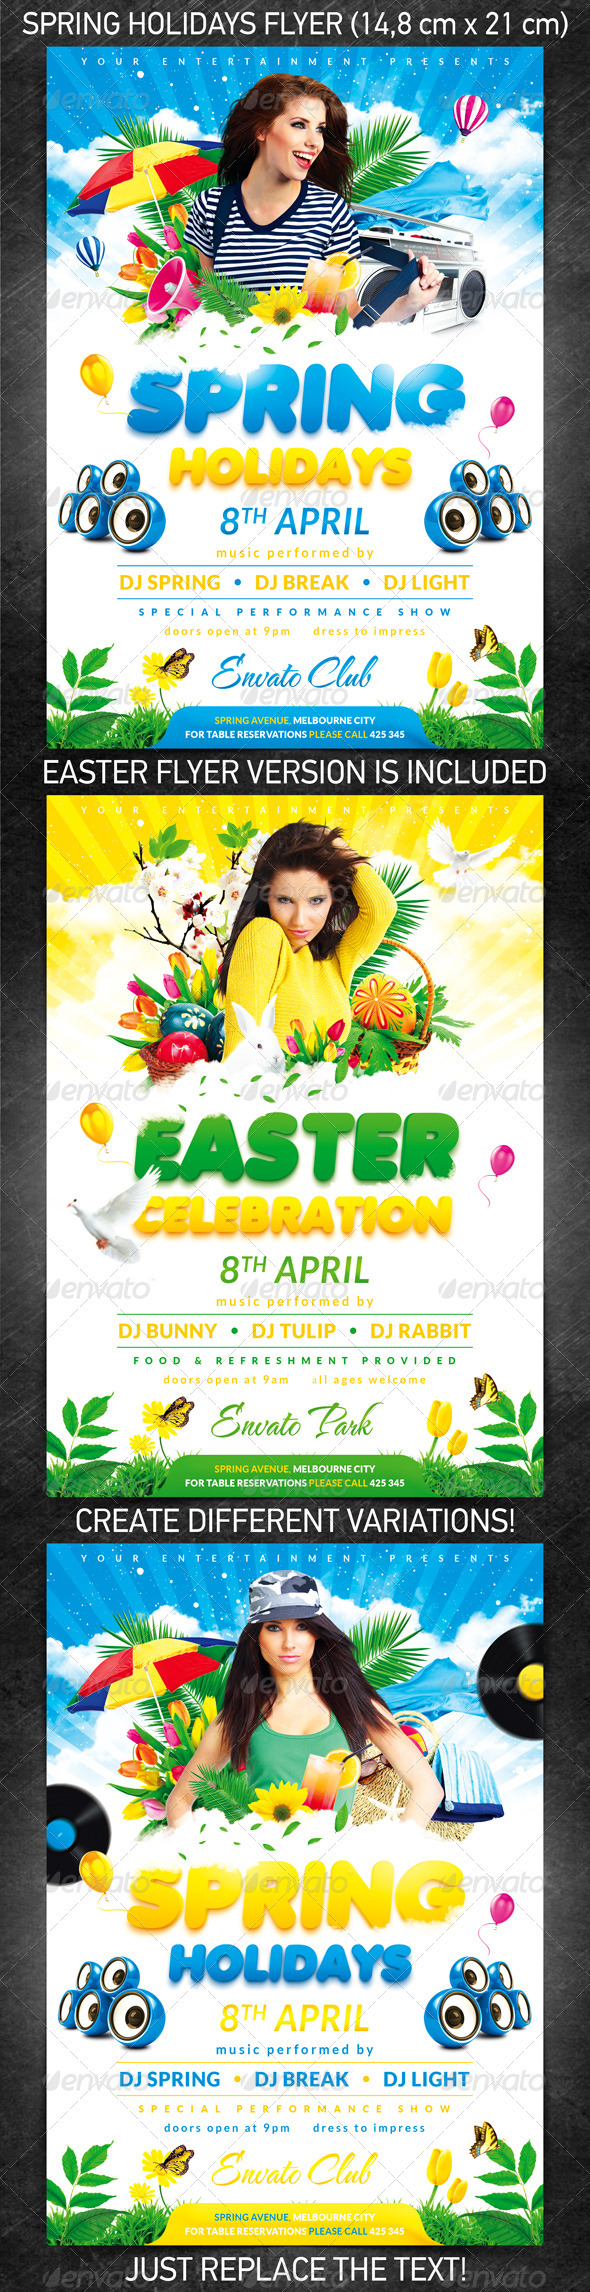 Spring Holidays/Easter Celebration Party Flyer - Flyers Print Templates